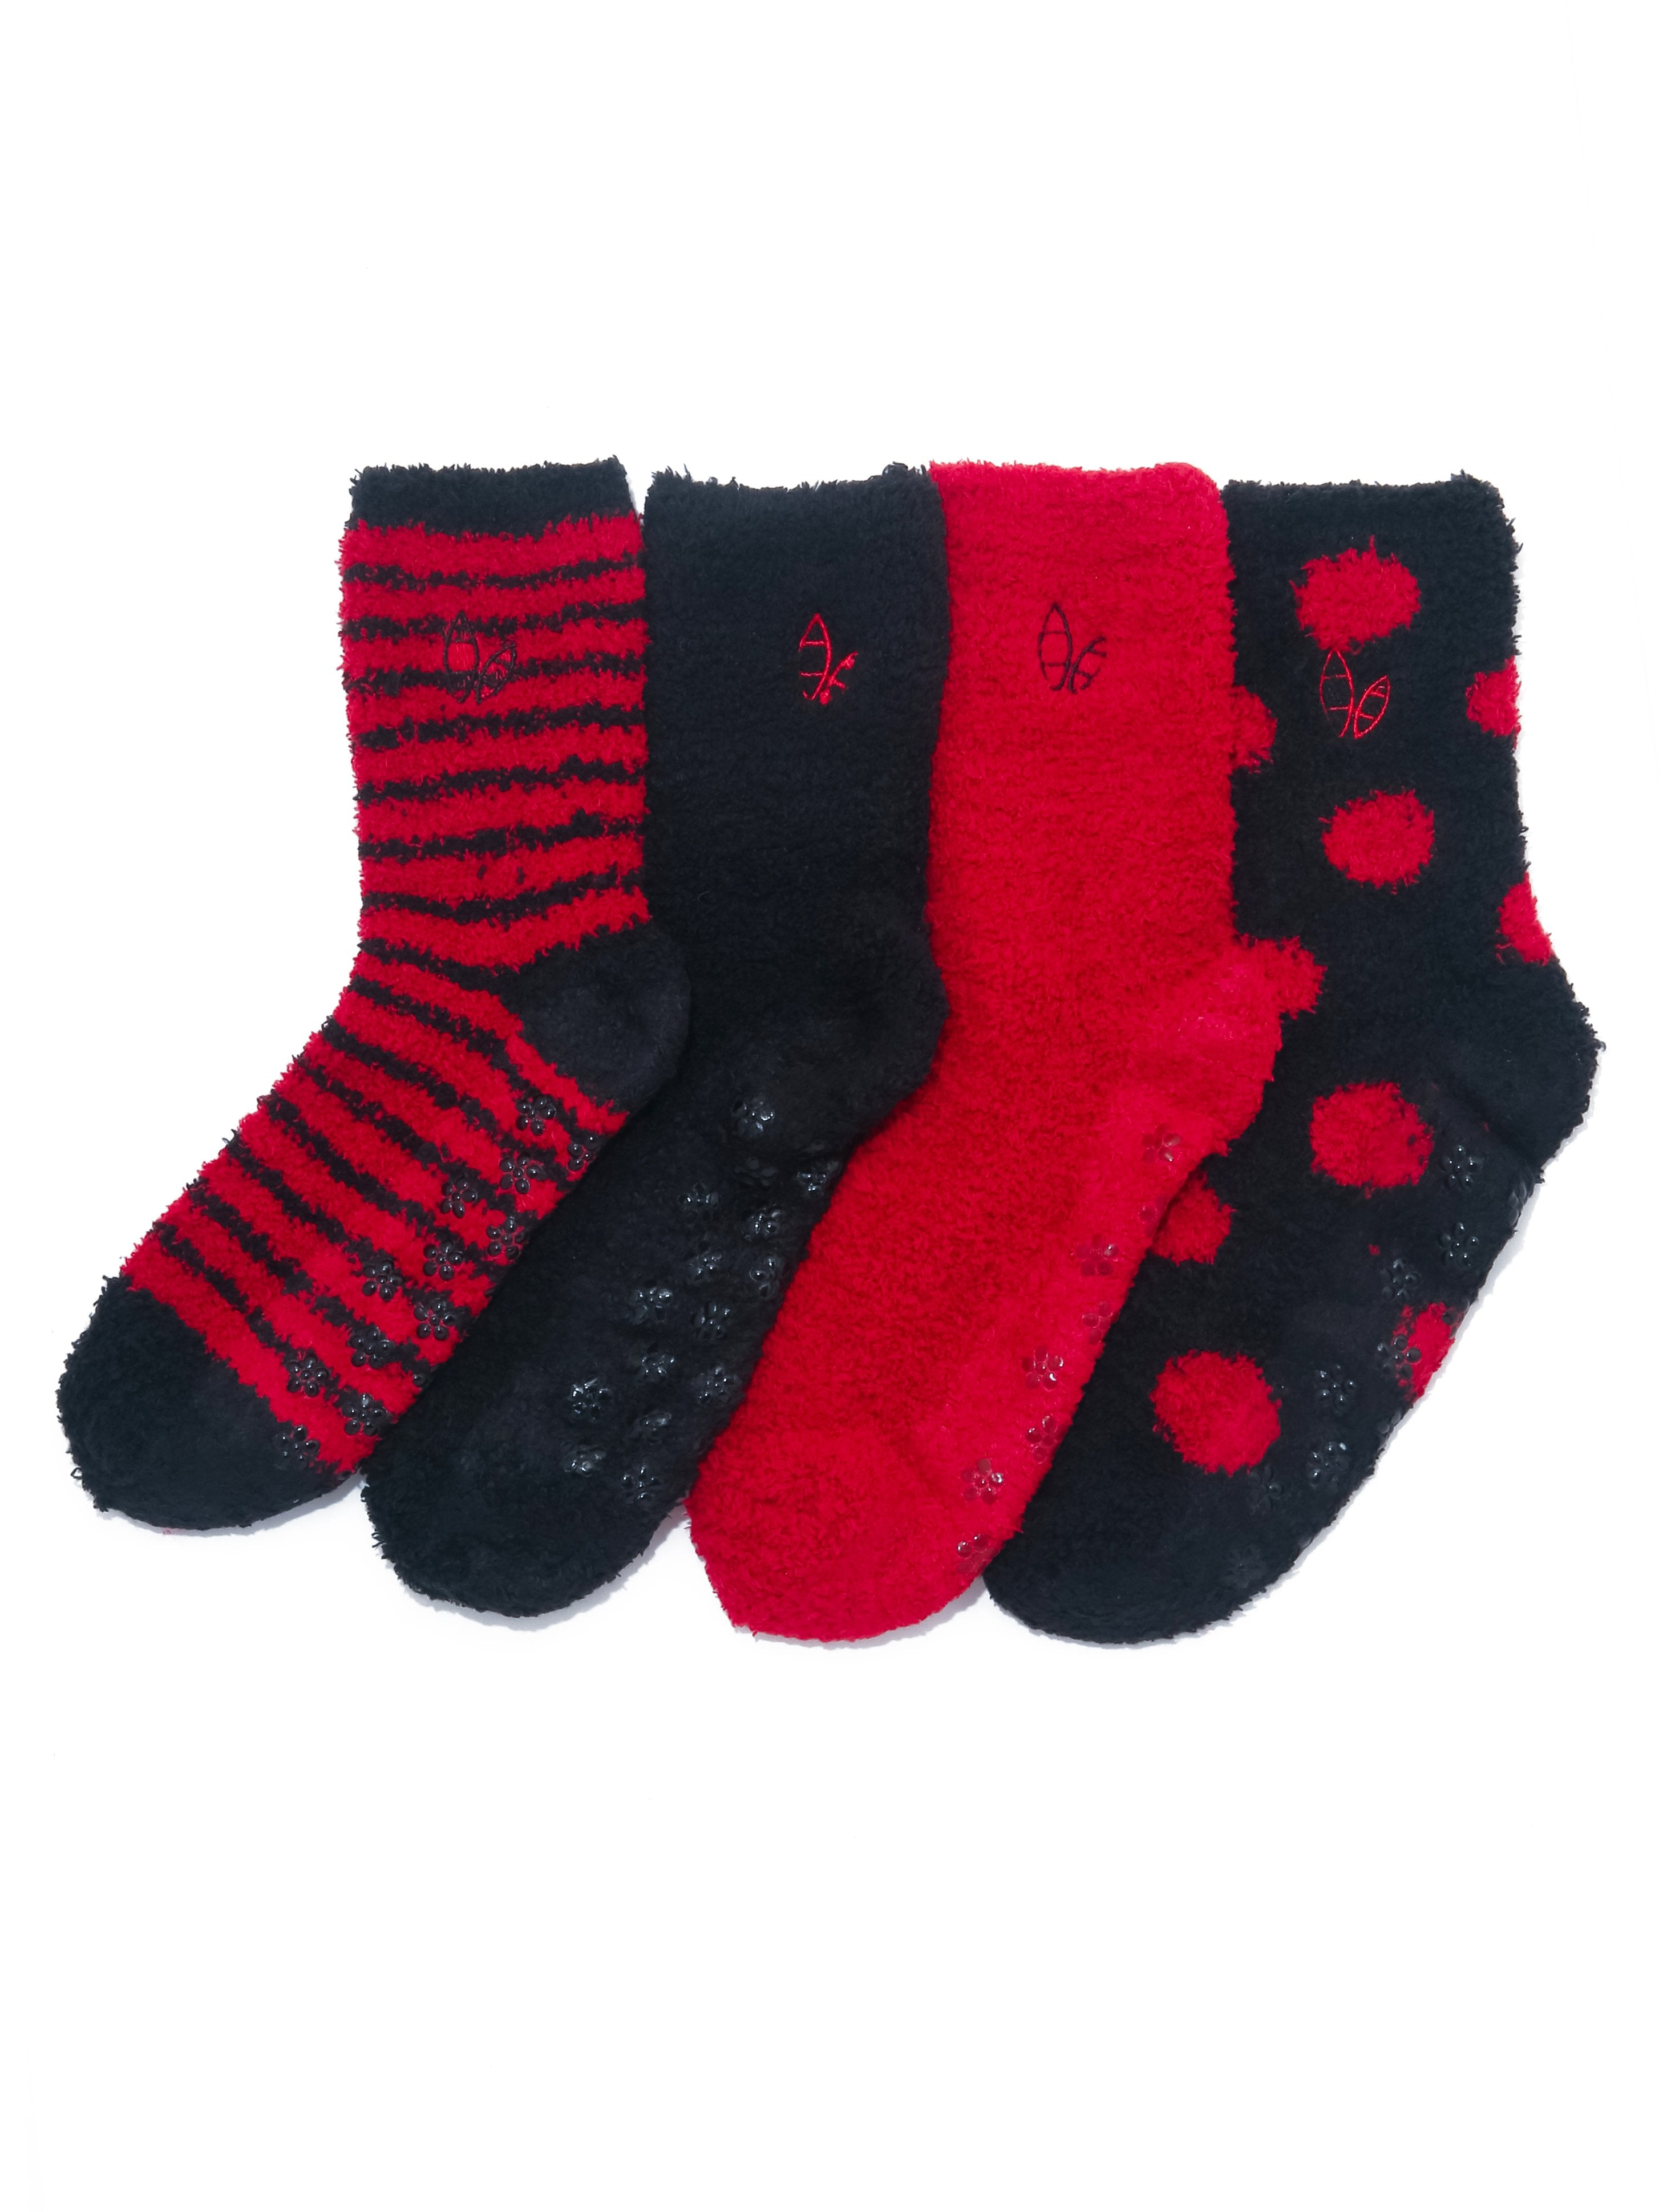 Women's (4 Pairs) Soft Anti-Skid Fuzzy Winter Crew Socks - Set A3